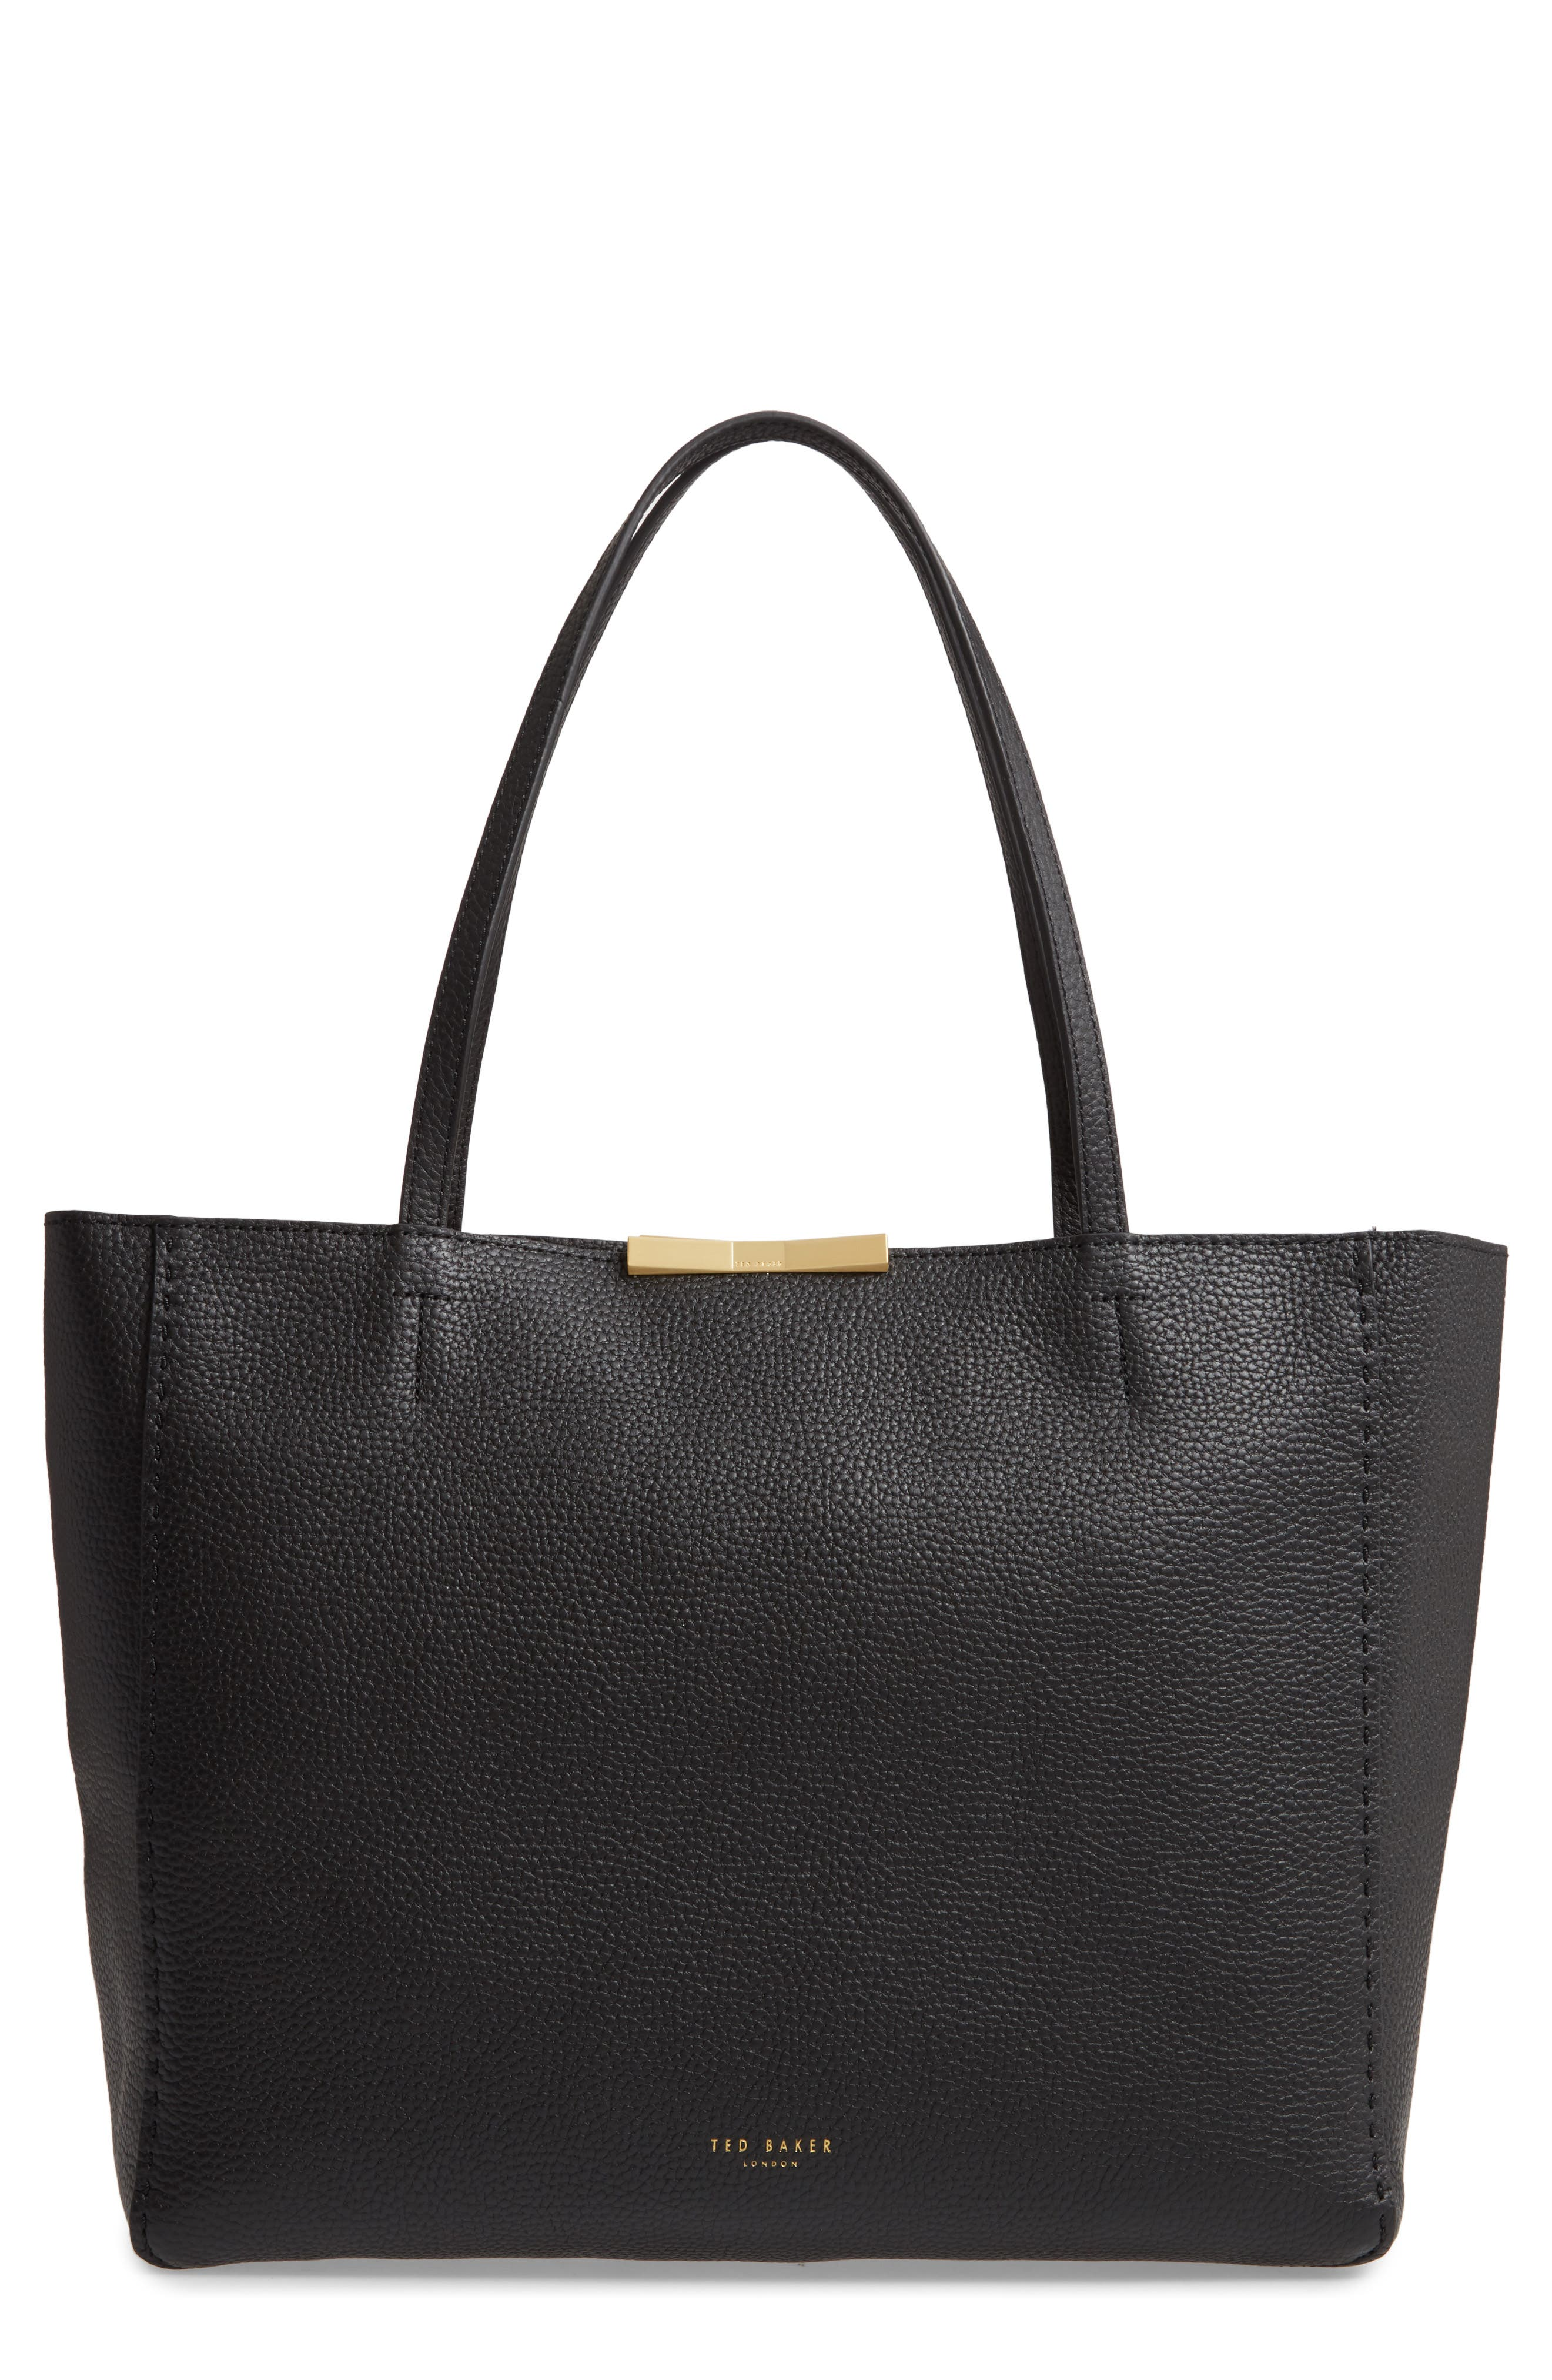 998fbb1735e2 Ted Baker London Tote Bags for Women  Leather